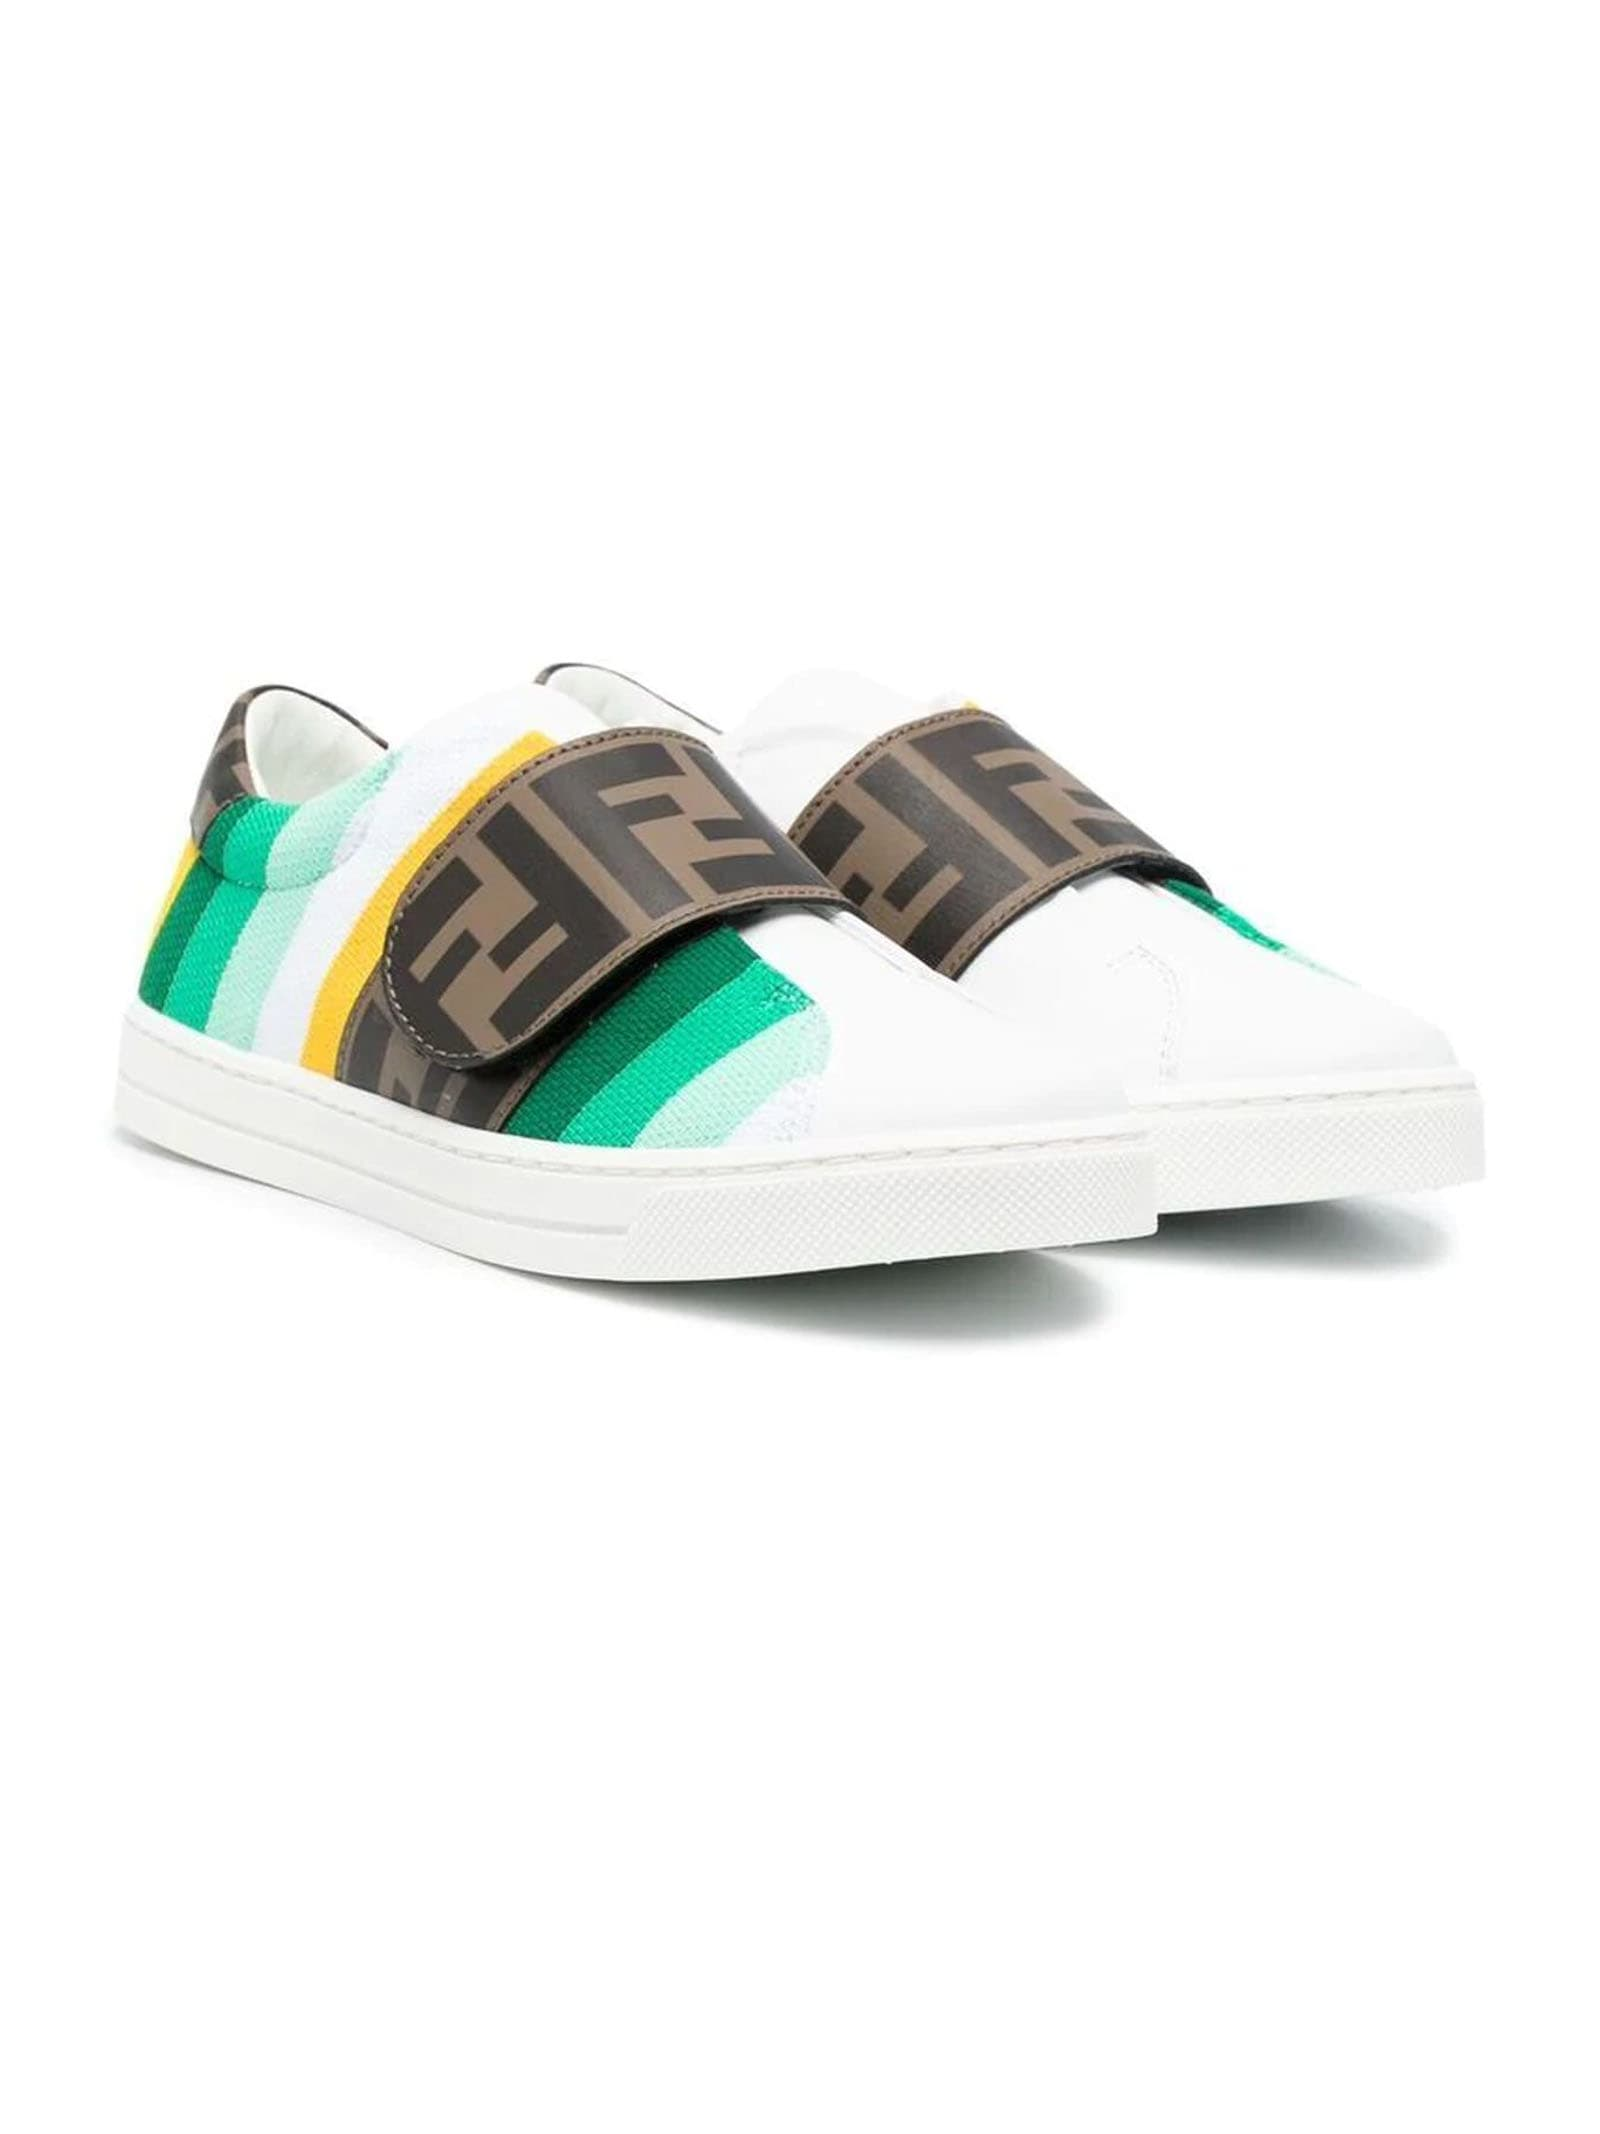 Fendi Leathers WHITE LEATHER SNEAKERS